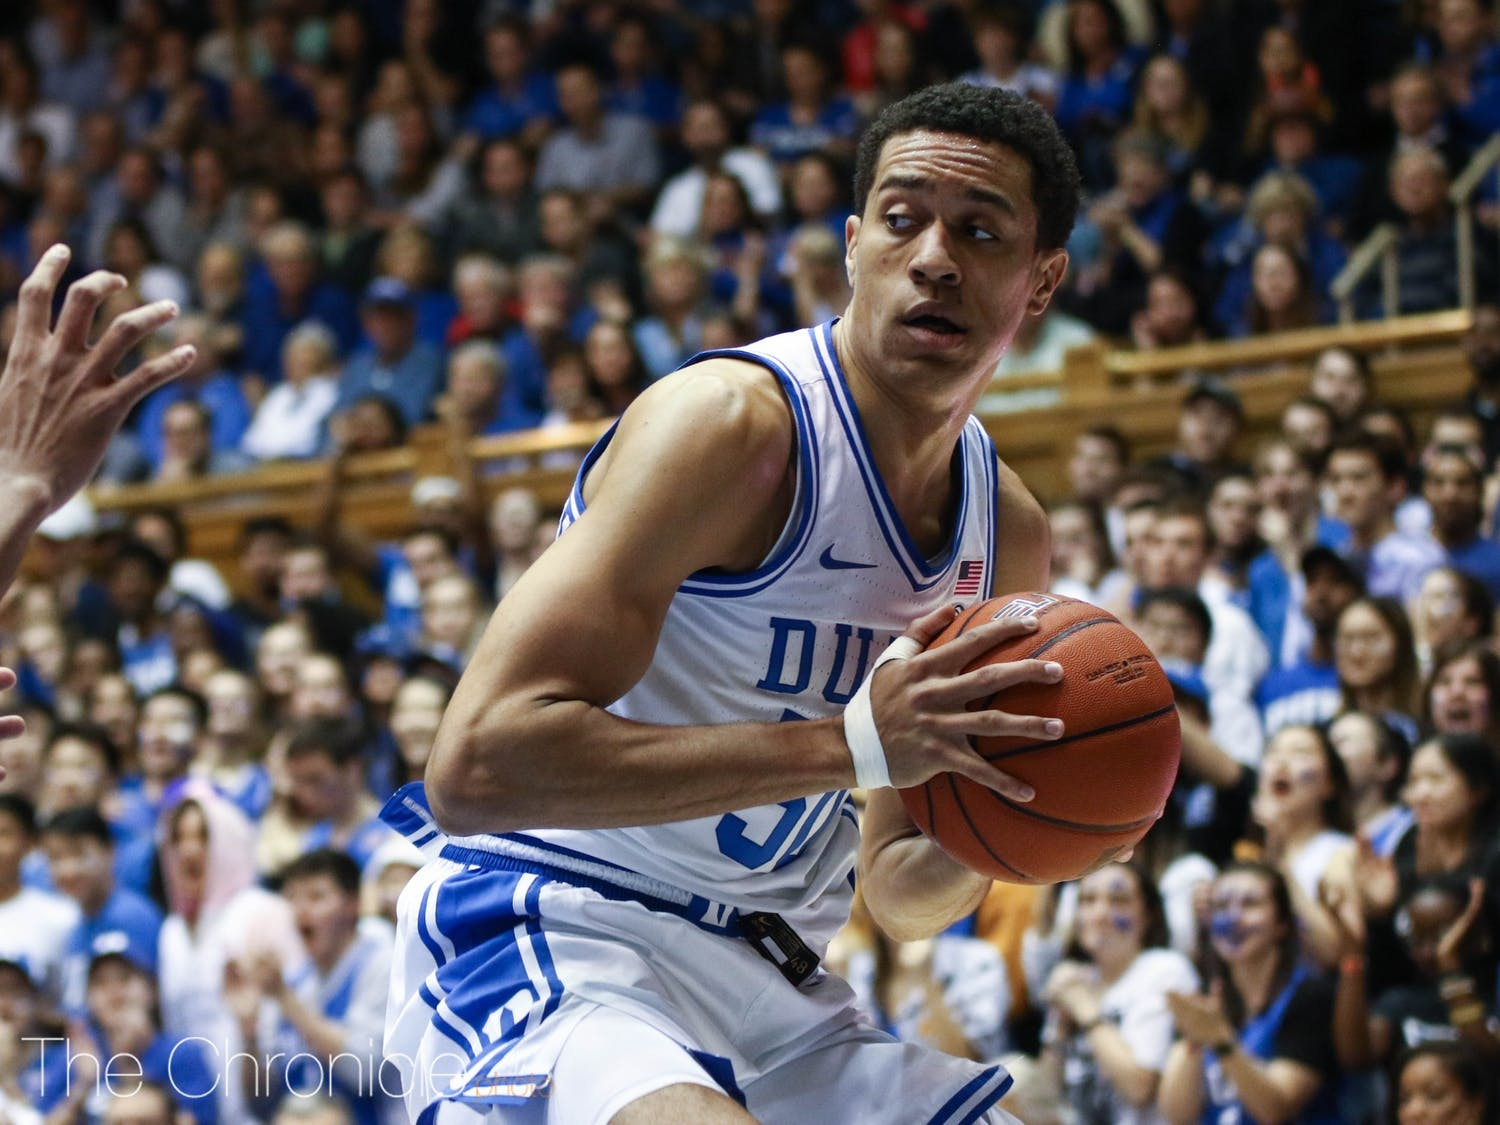 Justin Robinson is among three Blue Devil seniors that will play in their last game in Cameron Indoor Stadium Saturday.